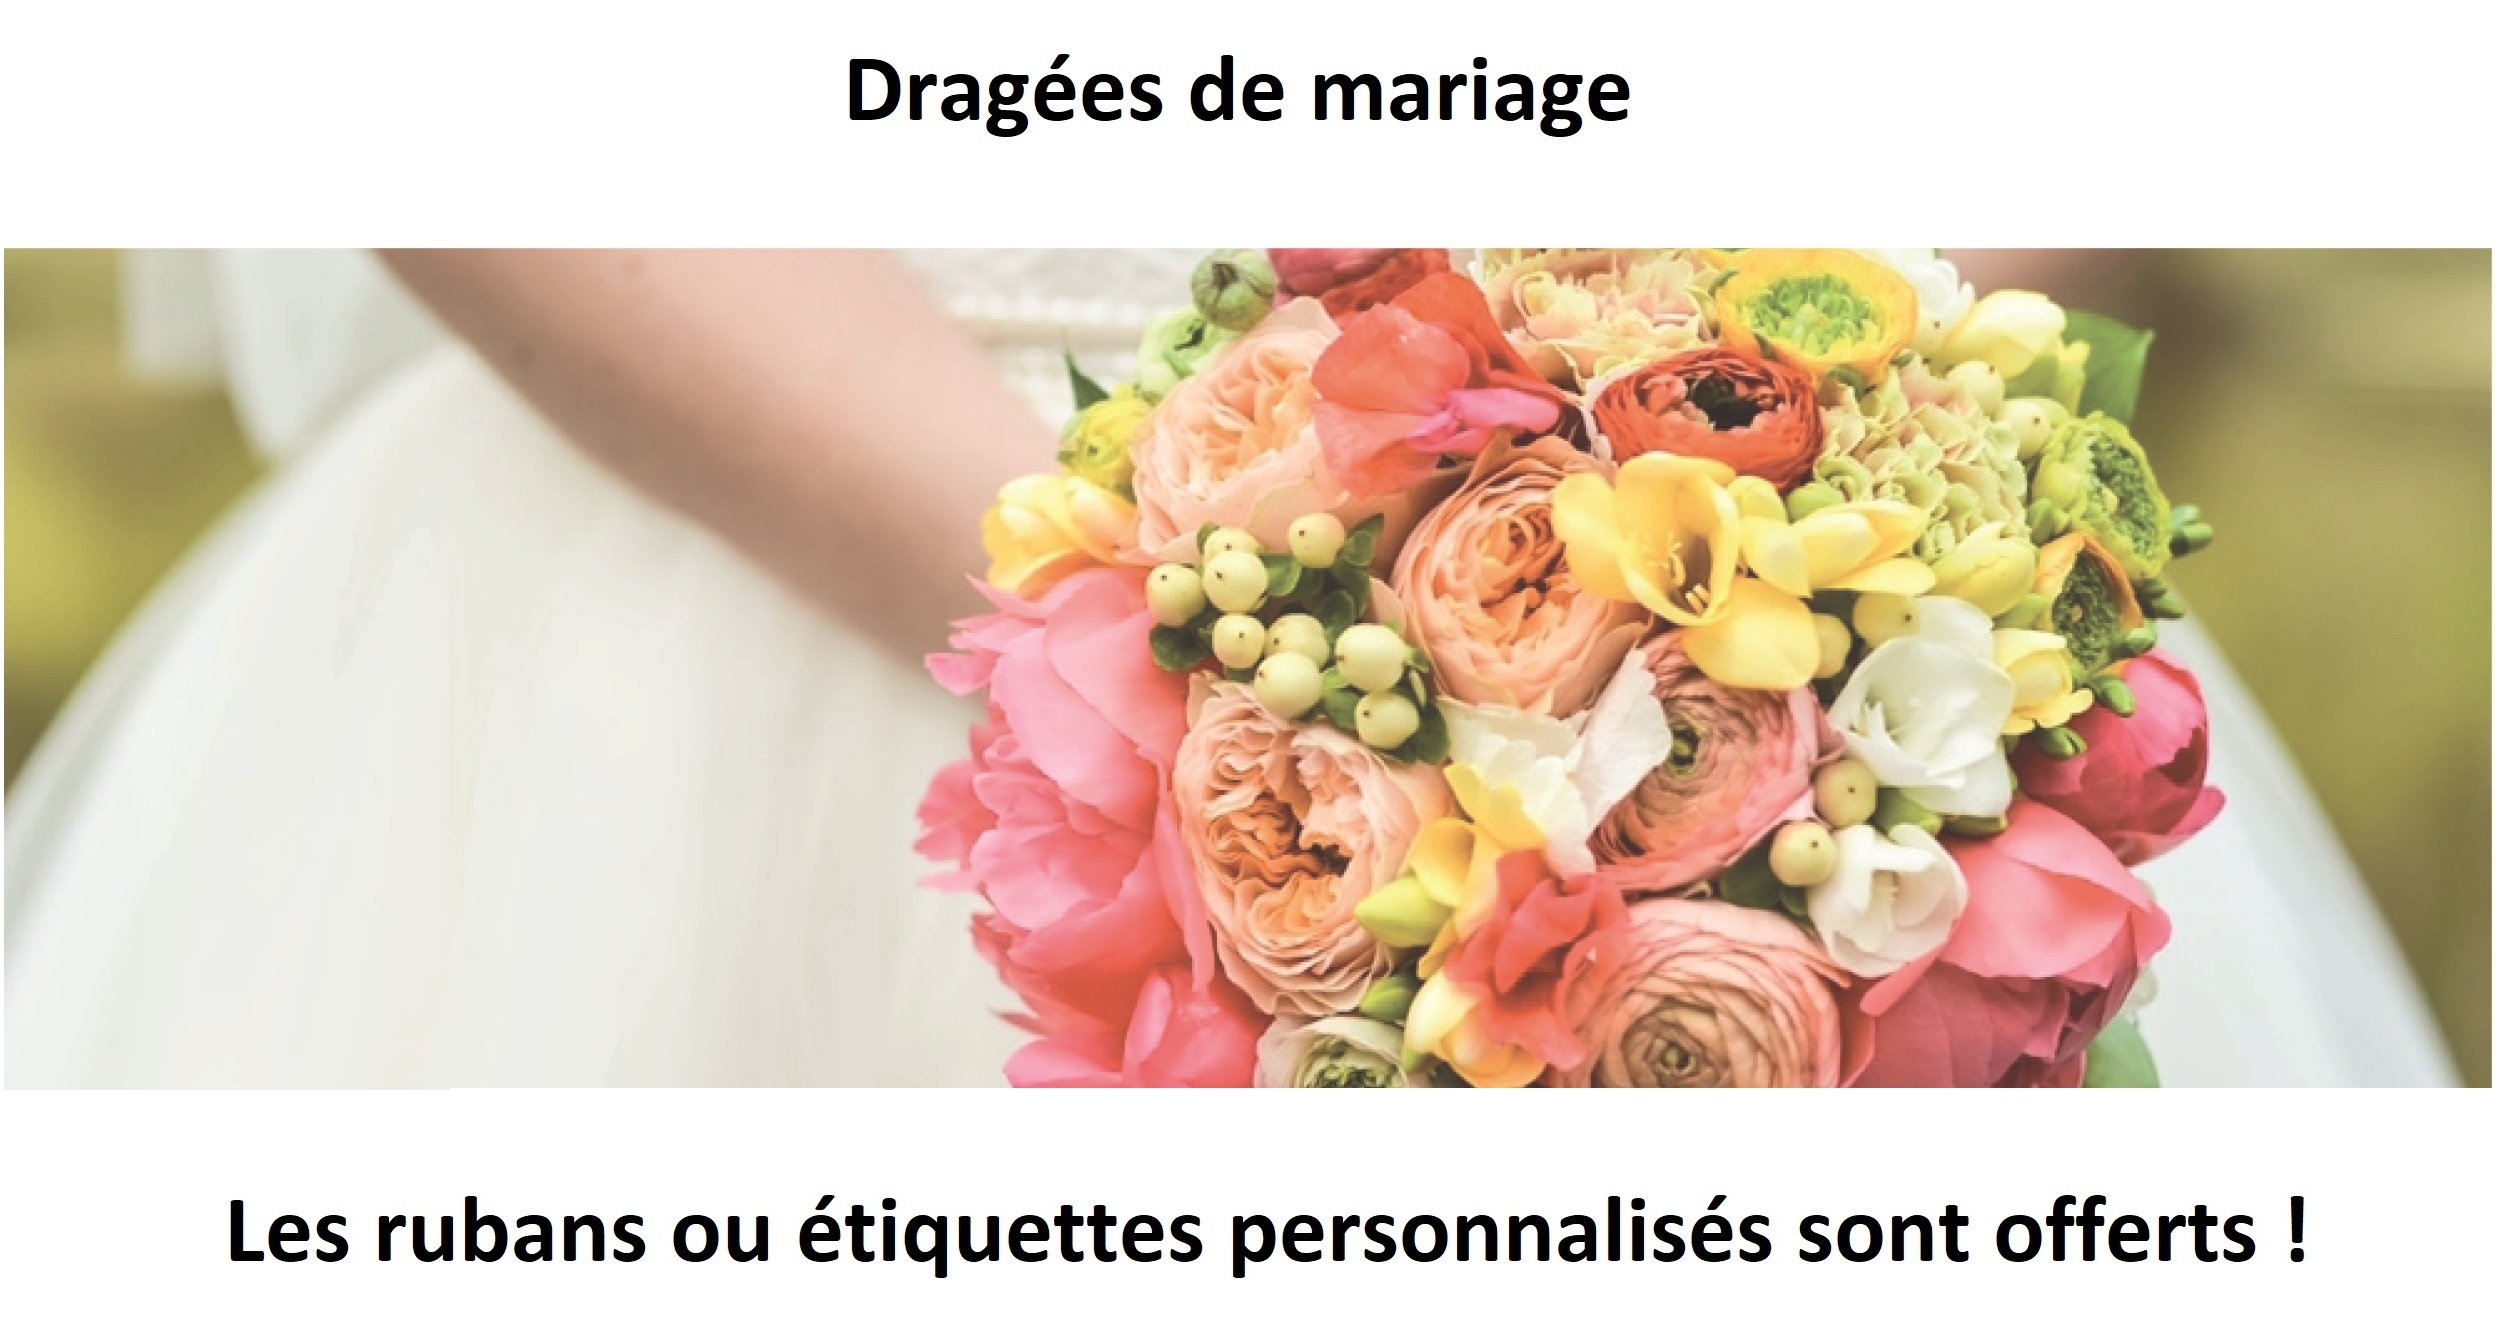 Achat dragees mariage à Lille